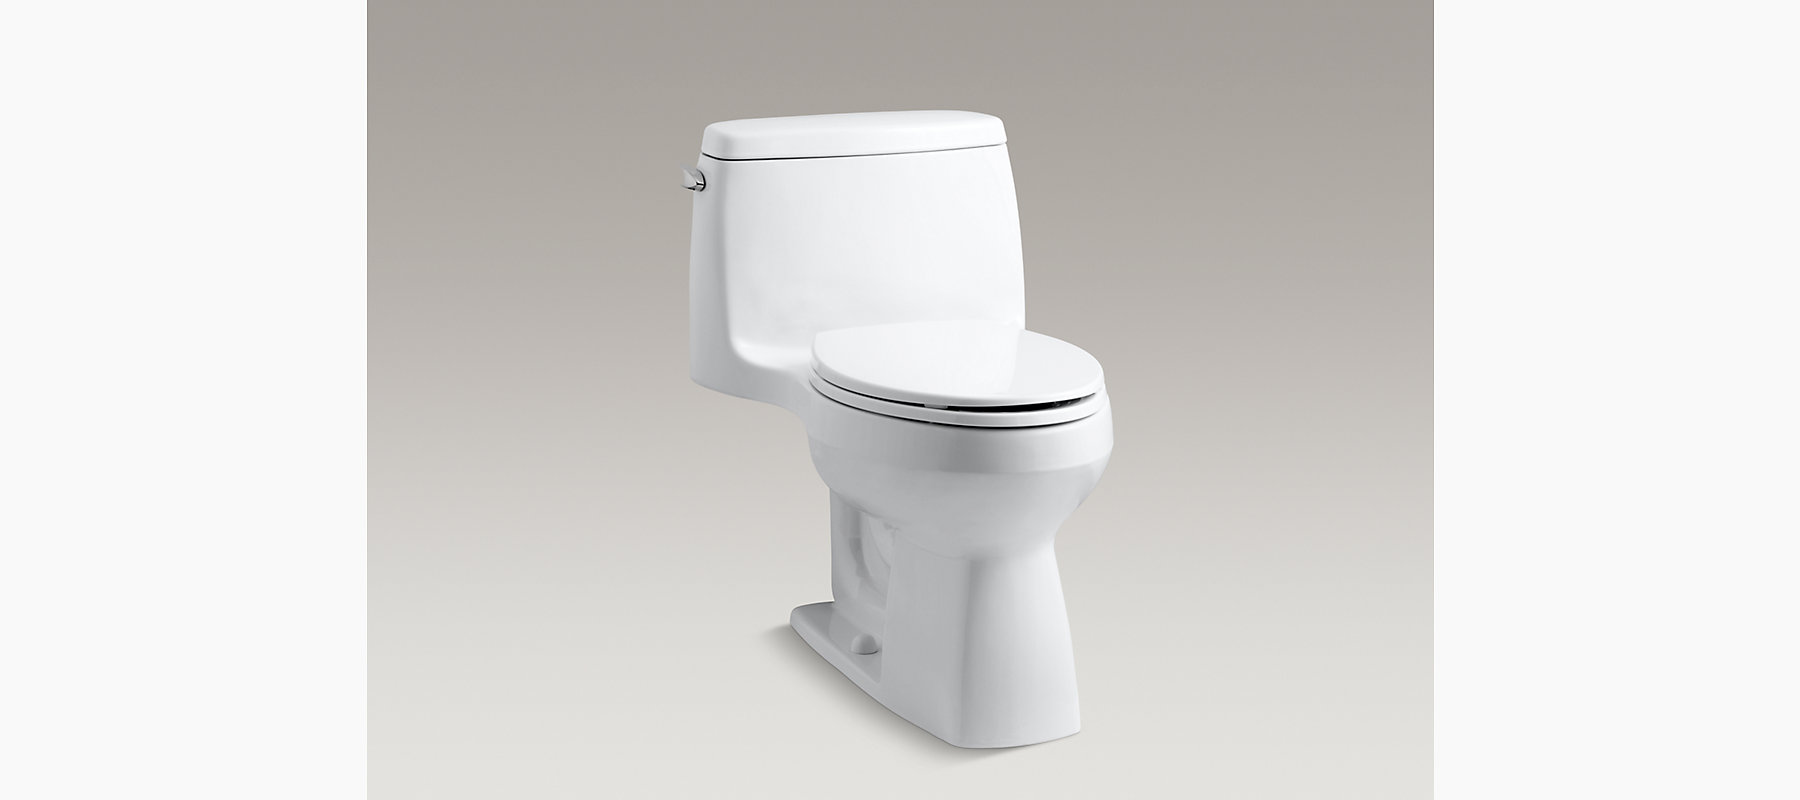 KOHLER|K-3323|Santa Rosa Compact Elongated One-Piece 1.6-GPF Toilet ...